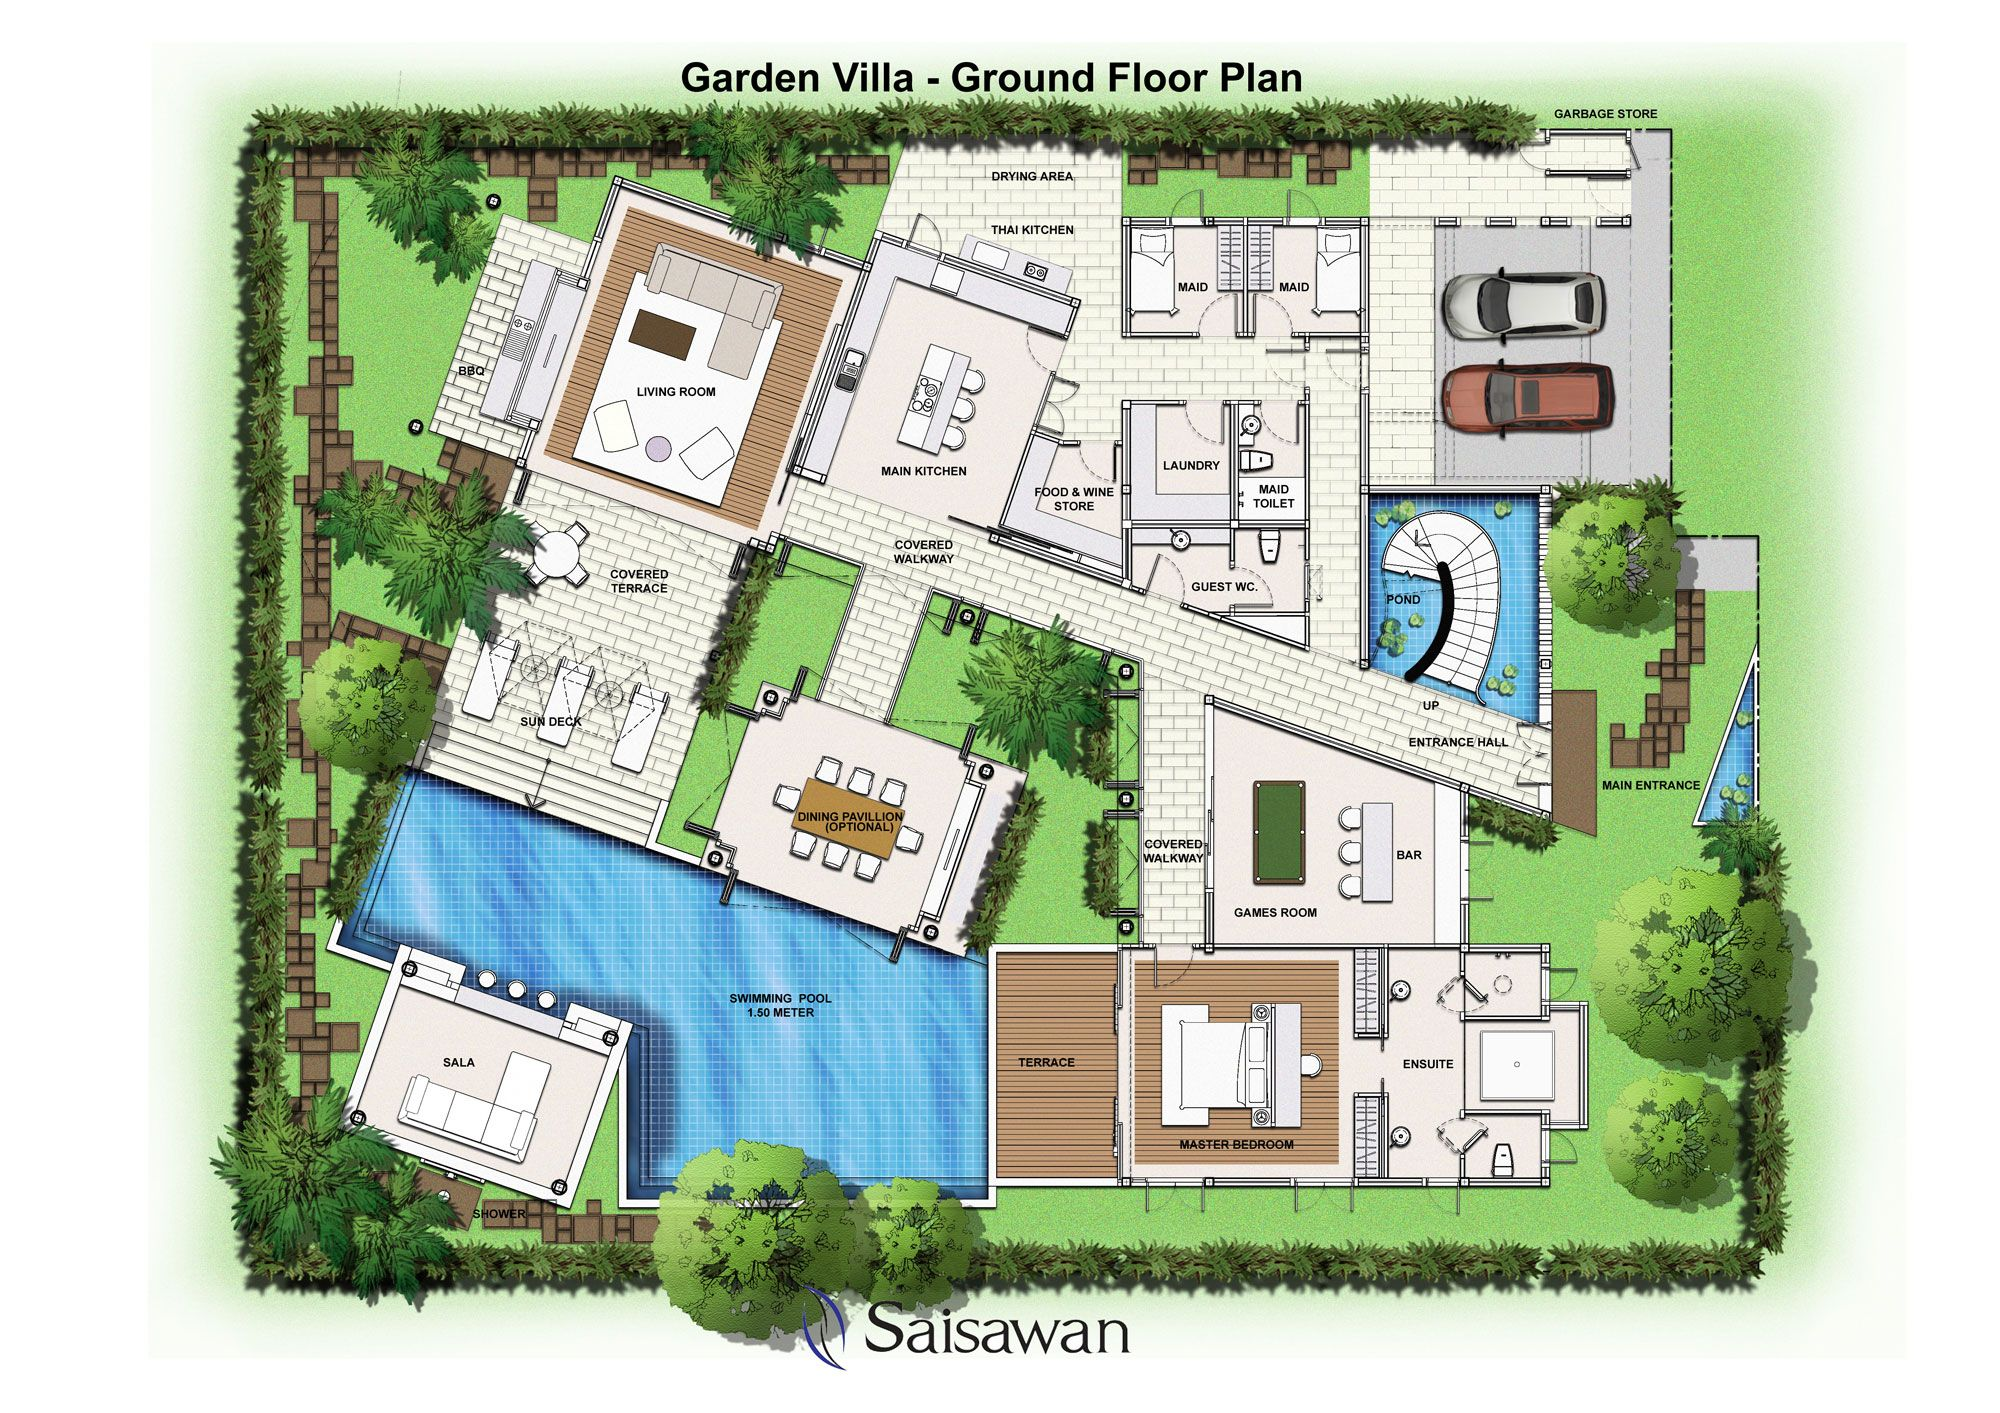 Saisawan garden villas ground floor plan house plans for Homegardendesignplan